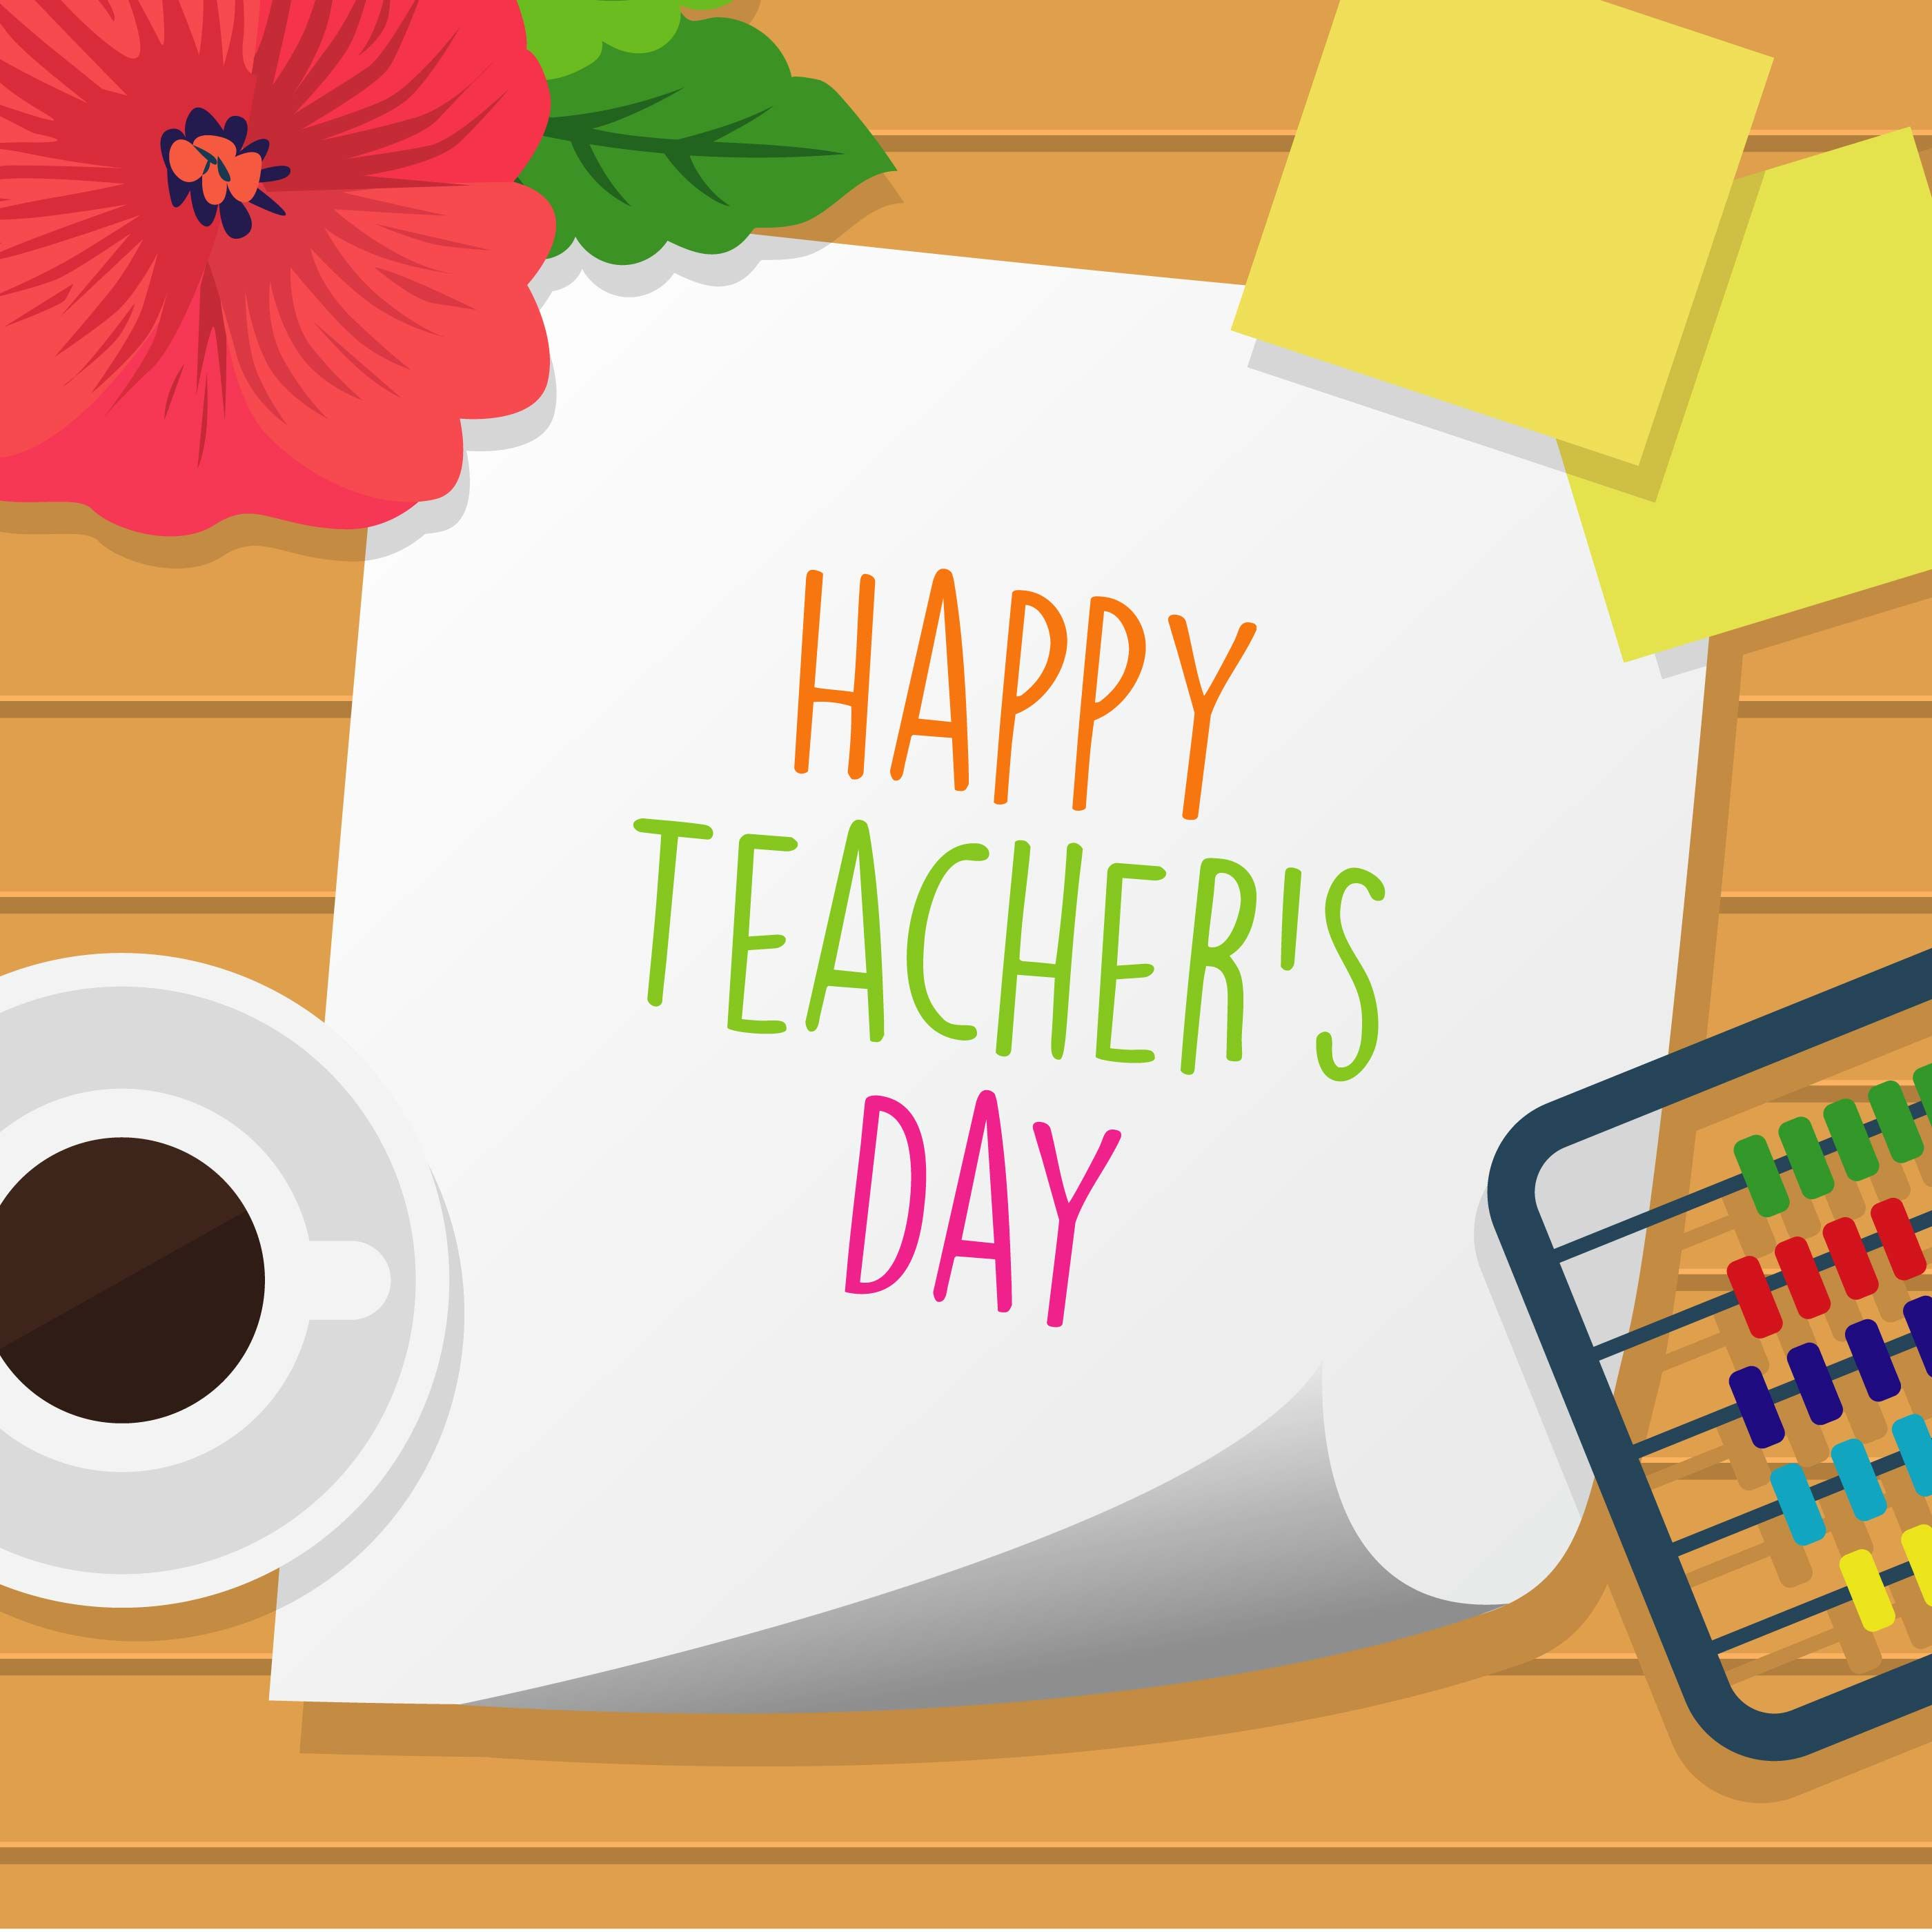 Happy Teachers Day Download Free In 2020 Happy Teachers Day Teachers Day Teacher